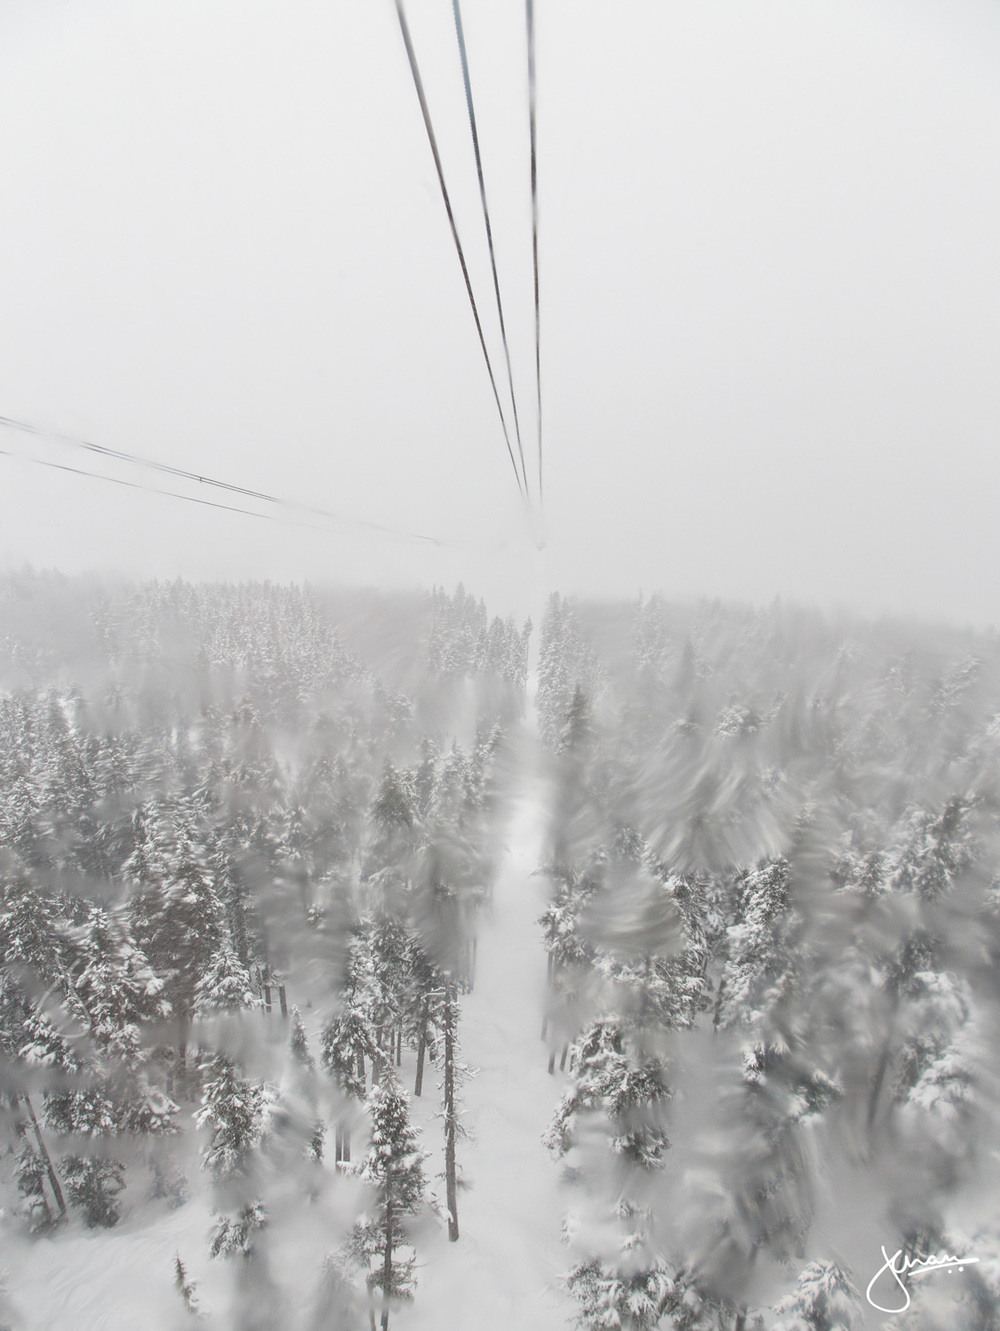 Snowing heavily on the Peak 2 Peak ride through the valley